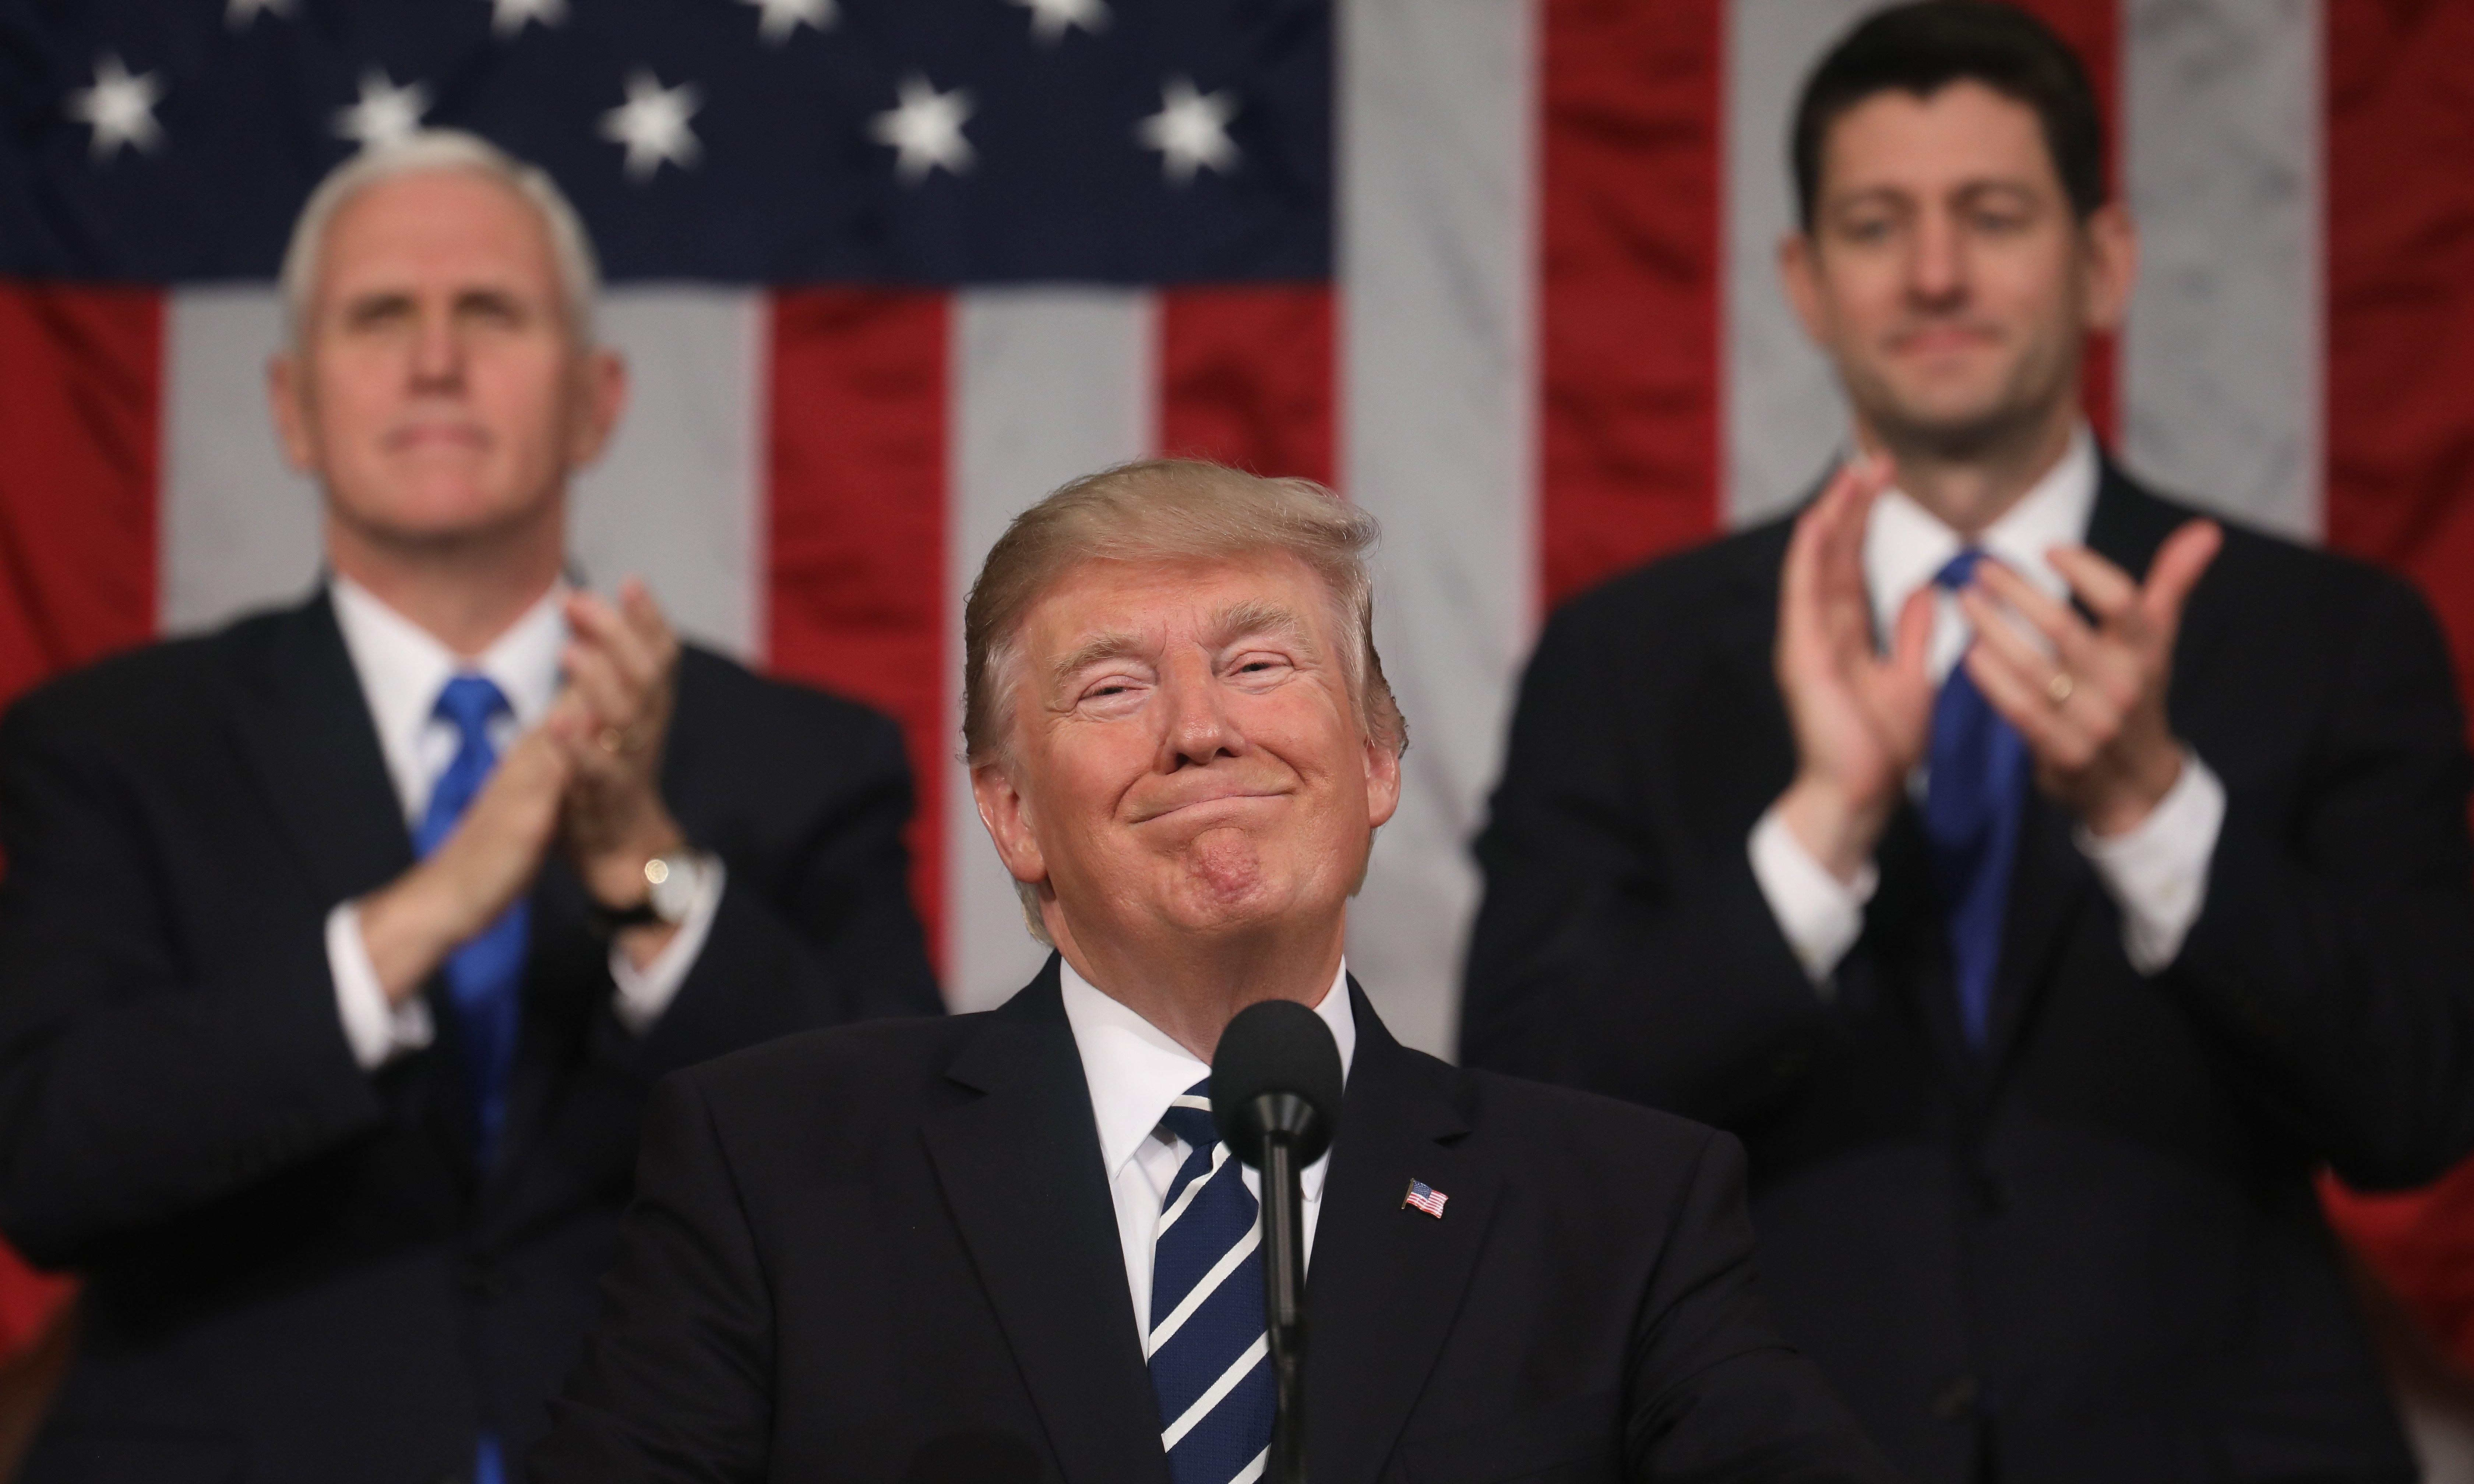 Workers barely benefited from Trump's sweeping tax cut, investigation shows